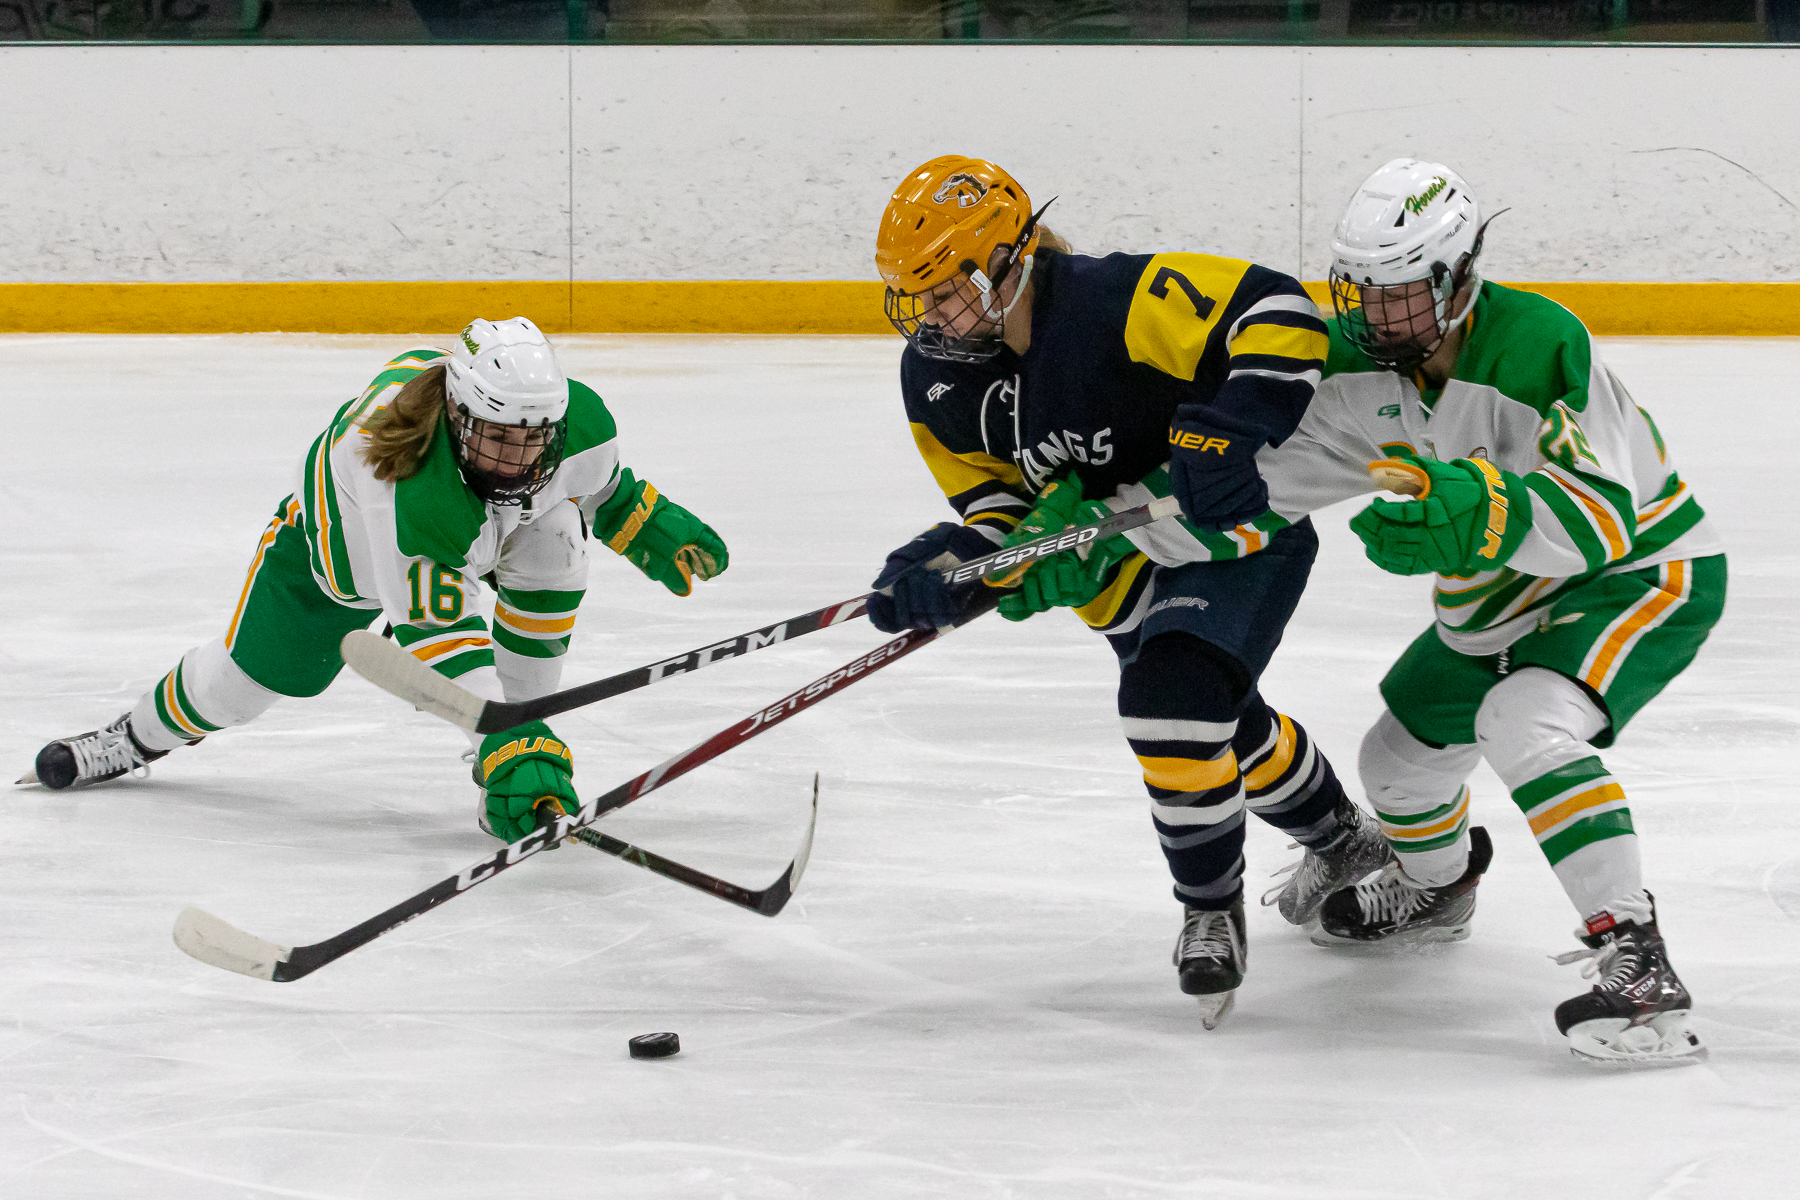 Breck freshman forward Ava Lindsay scored the Mustangs' lone goal to cut Edina's lead to 3-1 in the third period. Photo by Gary Mukai, SportsEngine